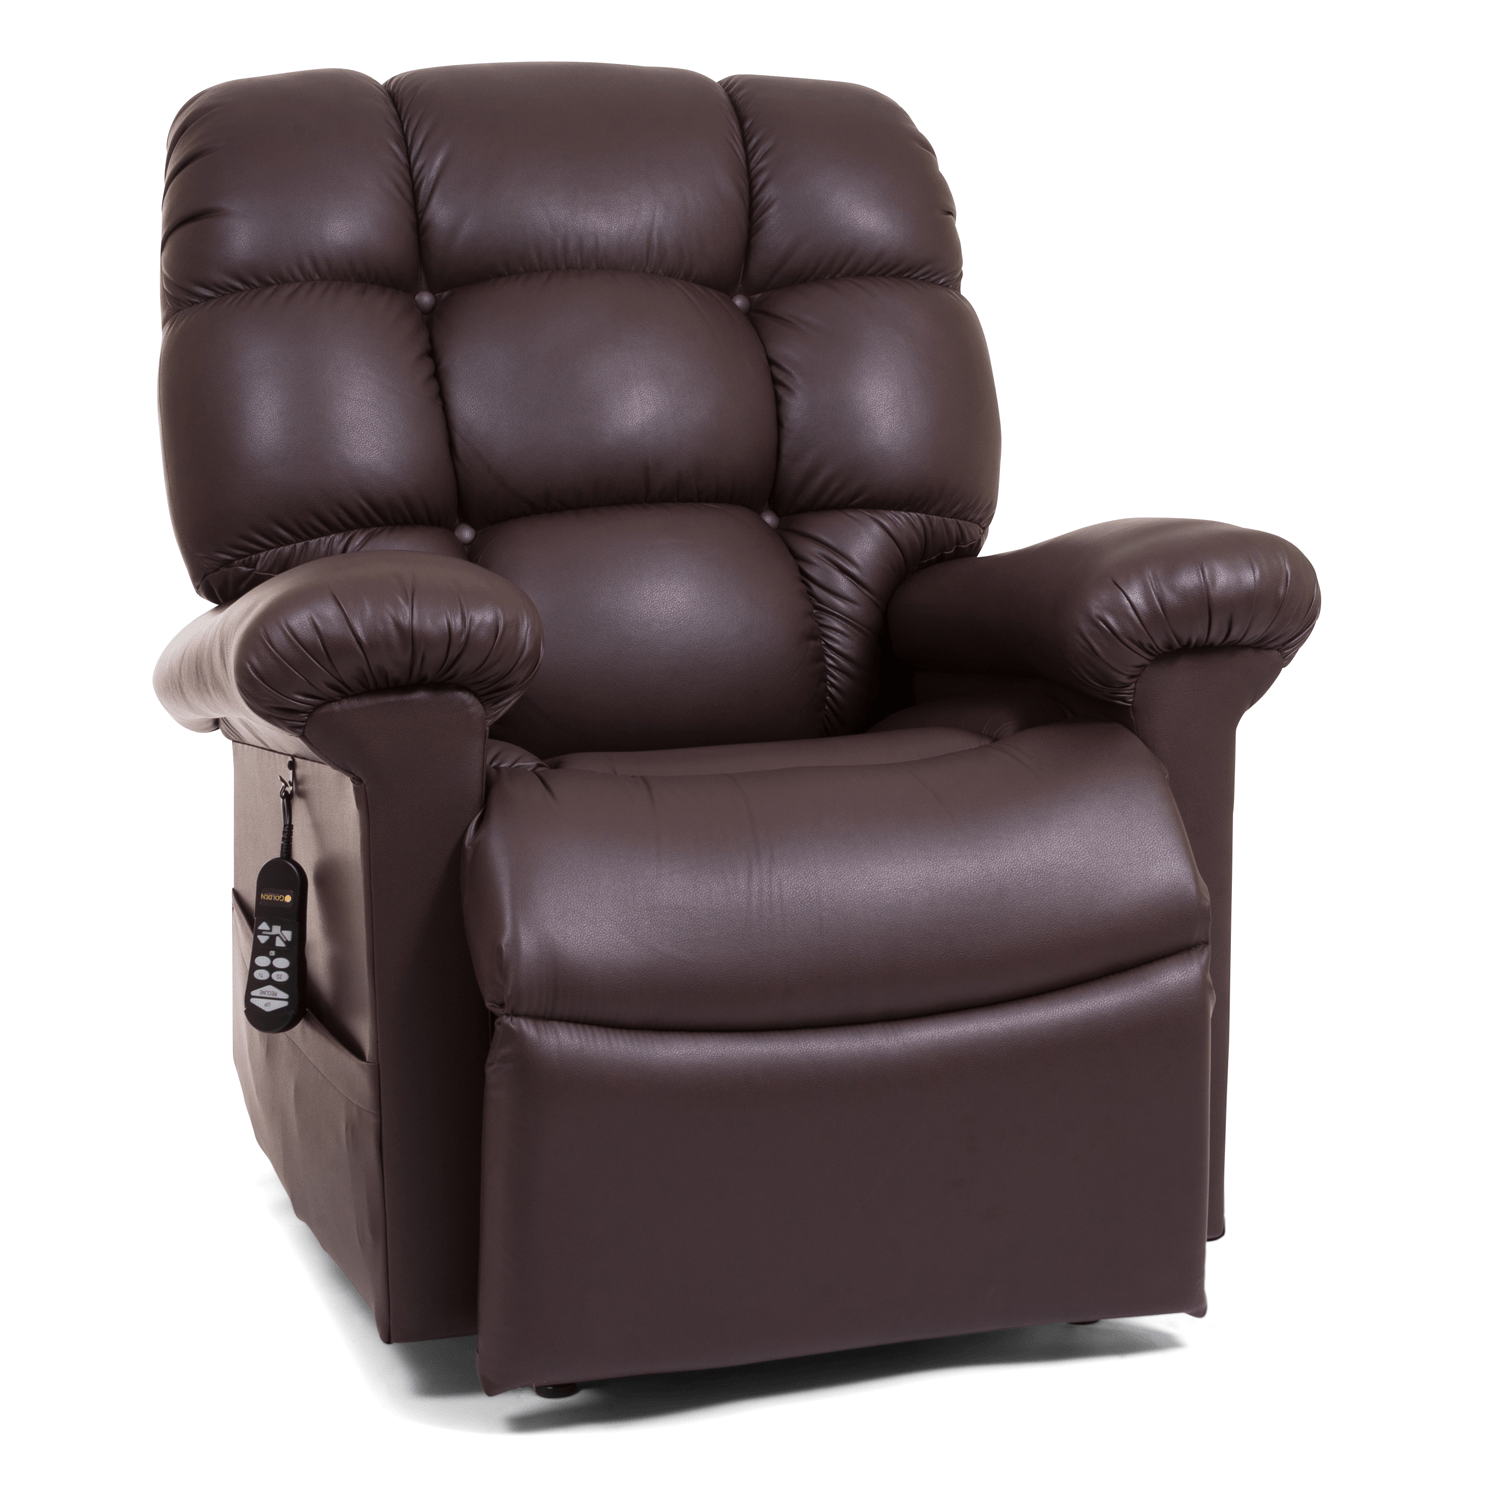 Lift Chair Rental Pr 510 Mla Brisacoffeebean Seated Lincoln Mobility